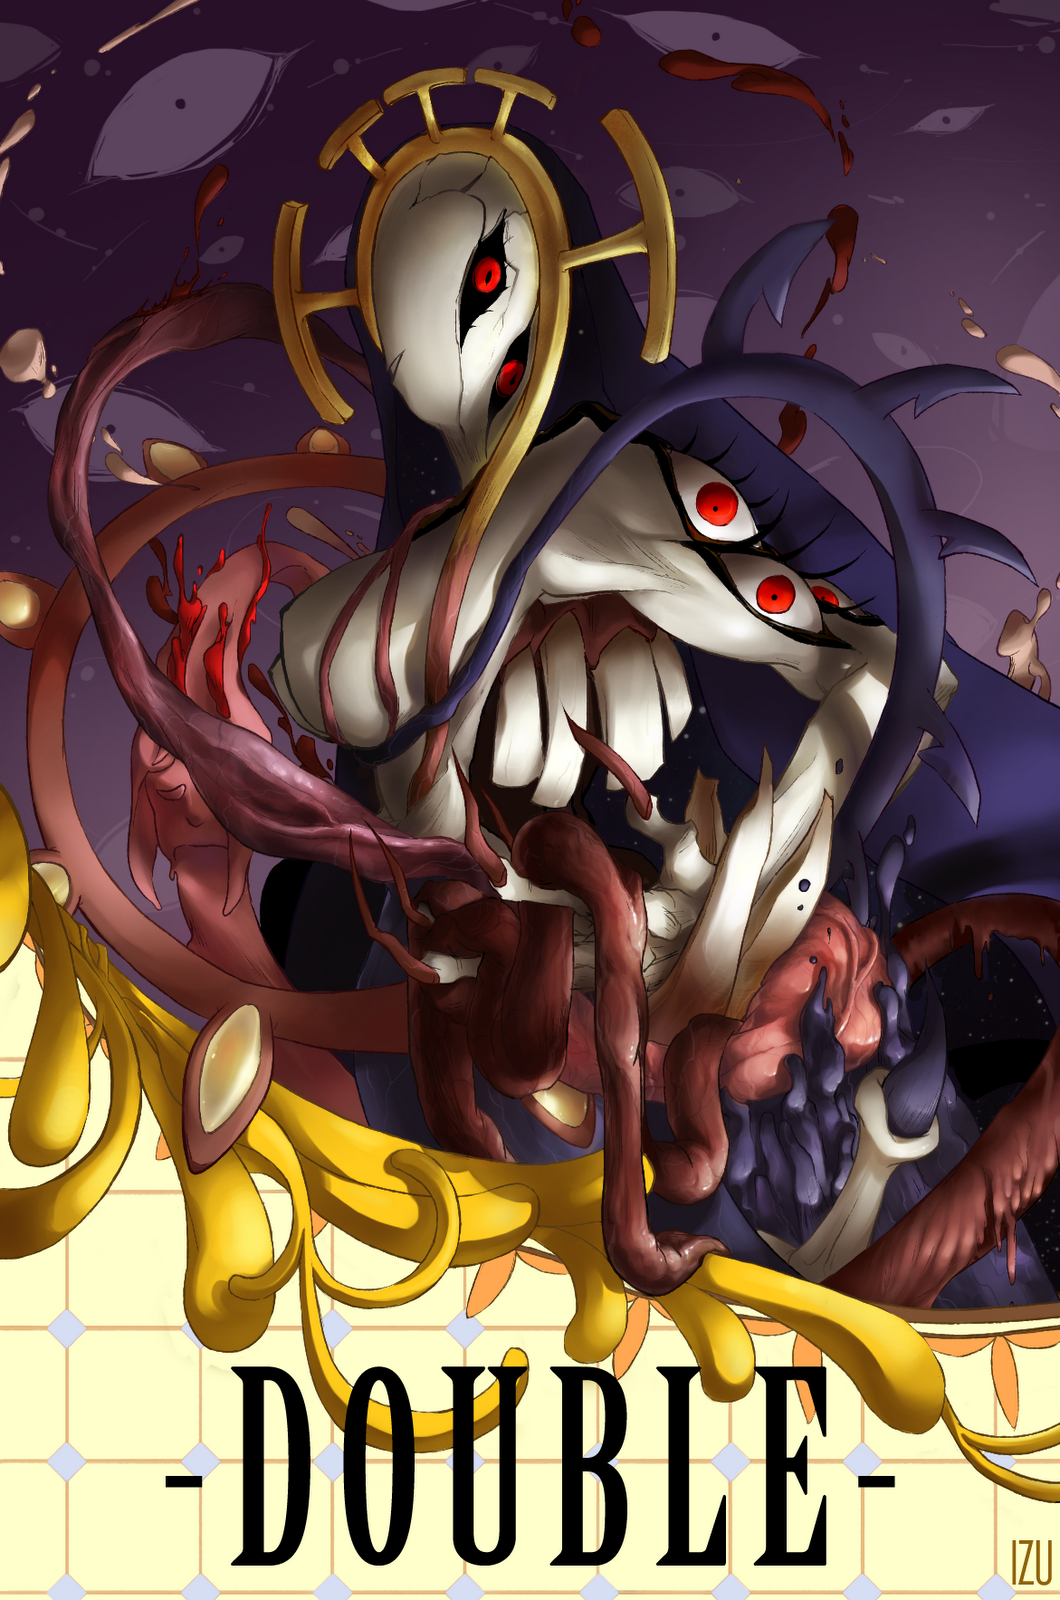 blood breasts double_(skullgirls) extra_eyes highres izu_(potential_for_art) large_breasts monster nun skullgirls solo teeth